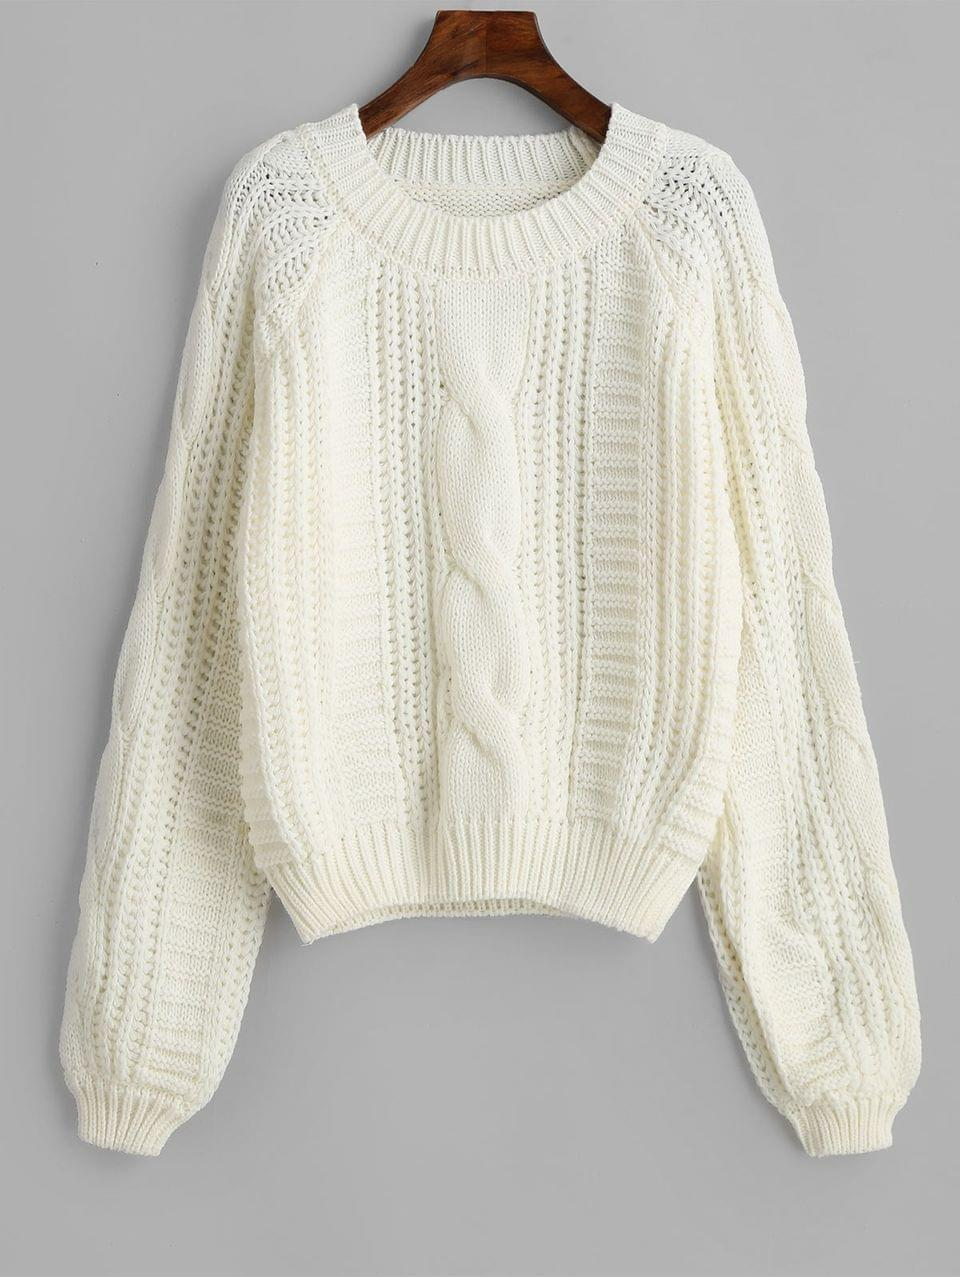 Women's Solid Crew Neck Raglan Sleeve Cable Knit Sweater - White